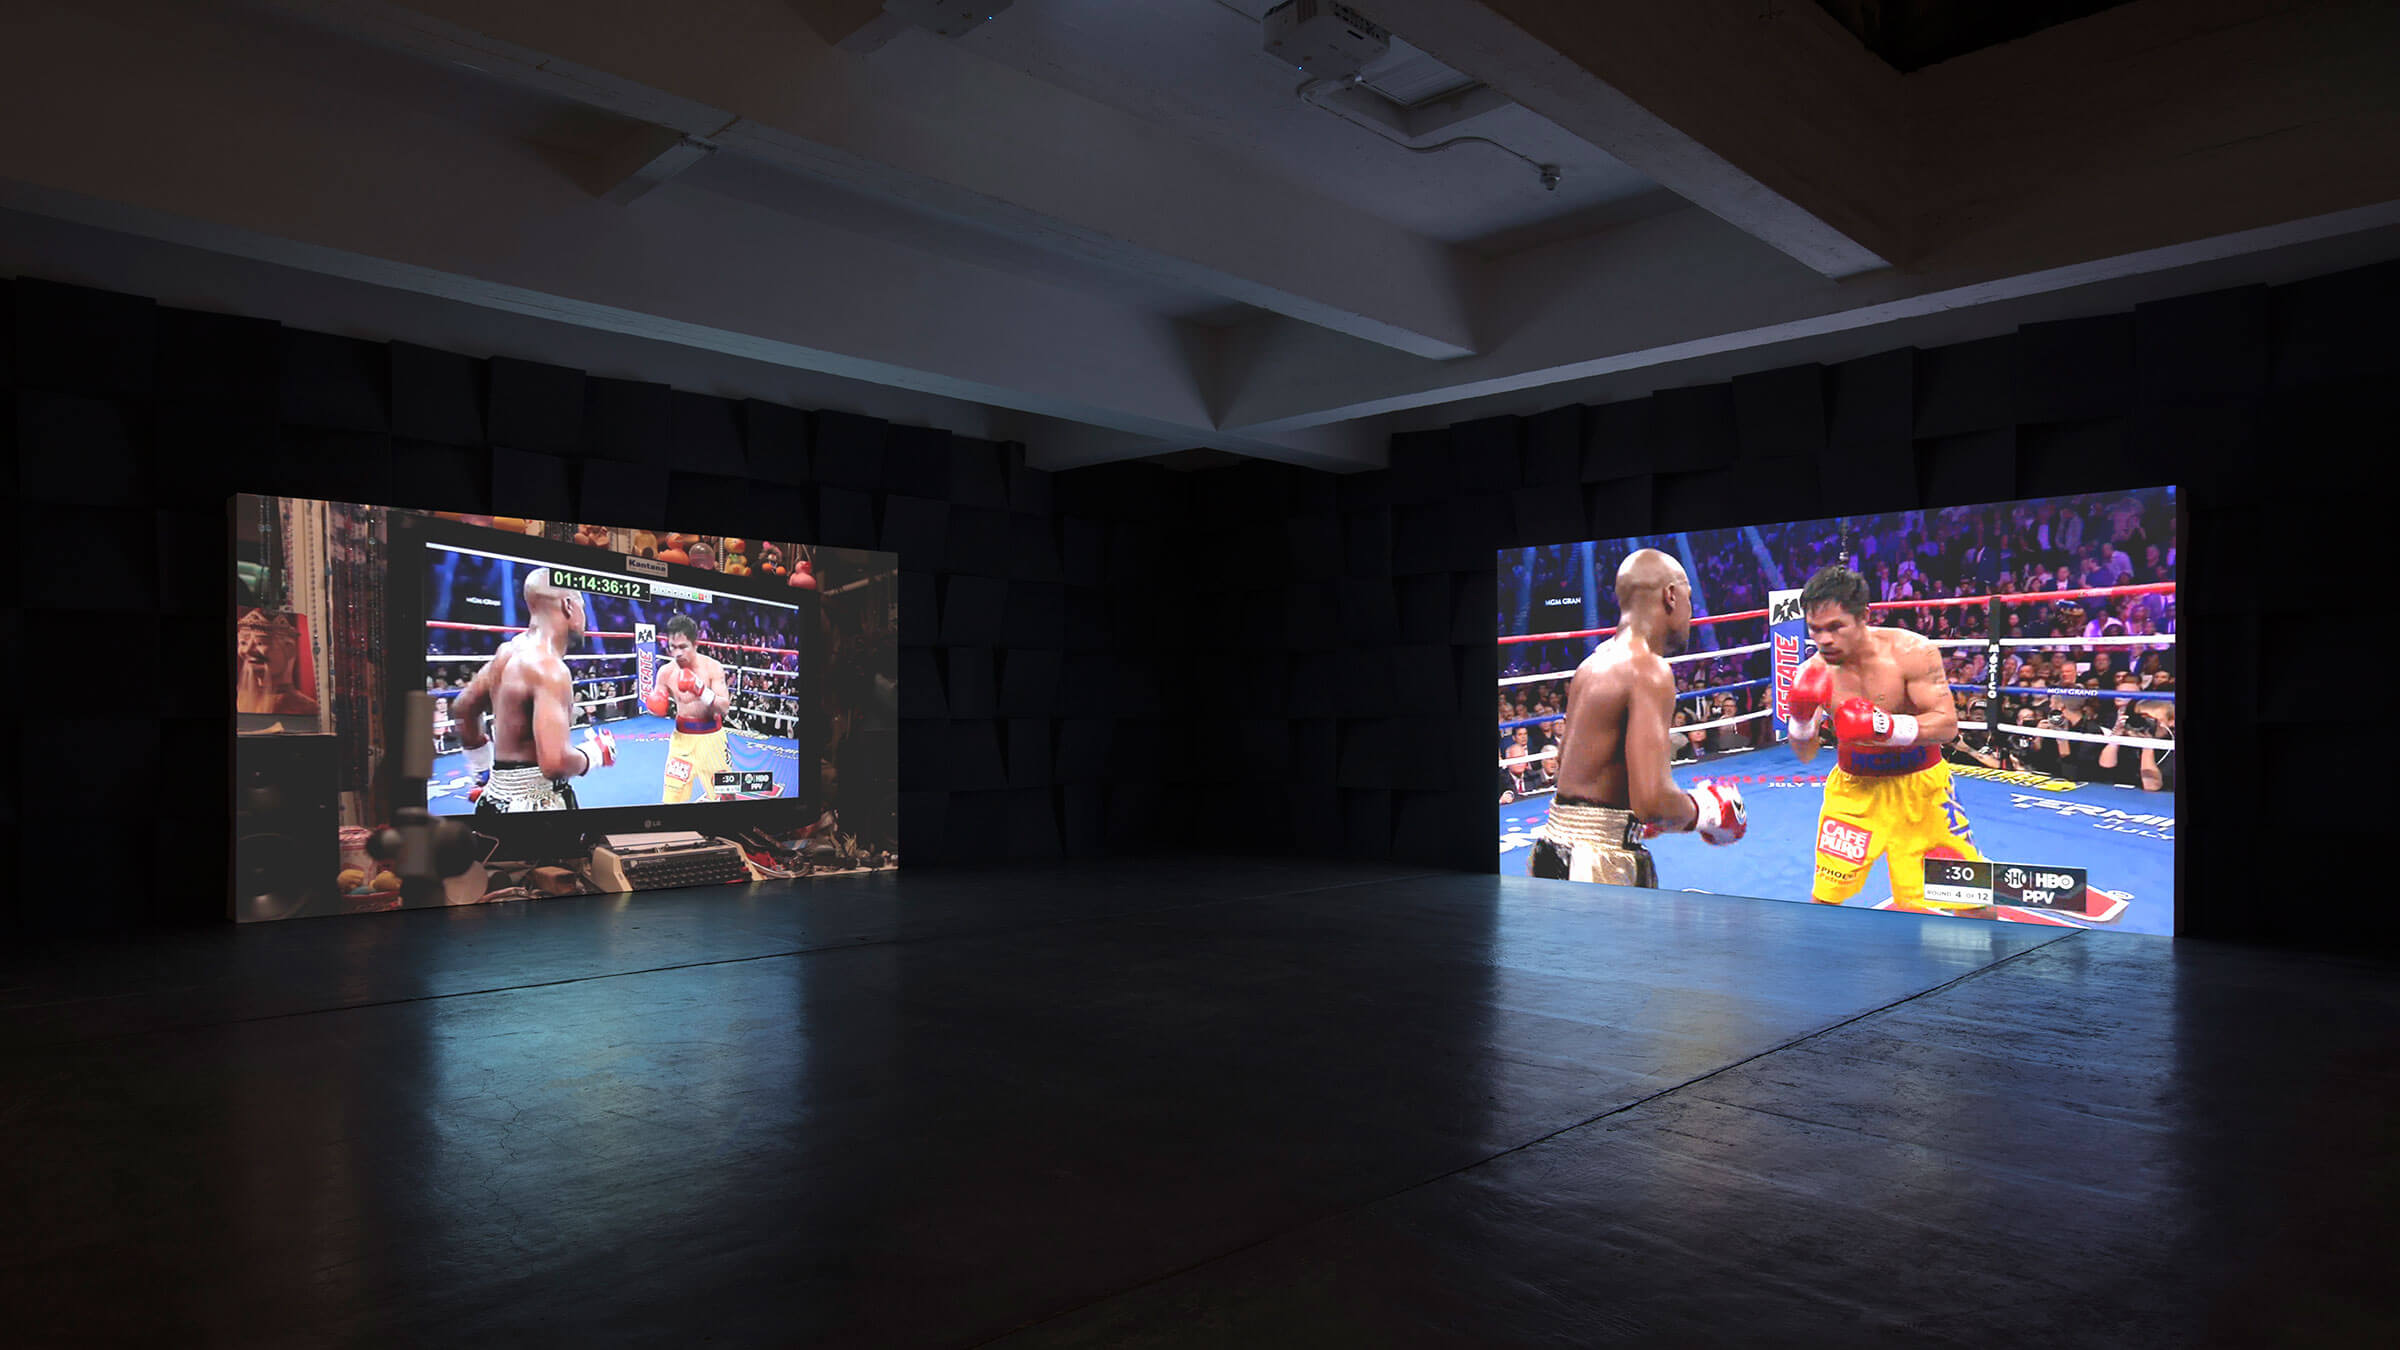 Paul Pfeiffer, <em>Three Figures In A Room</em>, 2015-16 two synced video channels on two projectors, four synced audio channels, Mac Minis  dimensions variable 48 minutes, looped © Paul Pfeiffer.